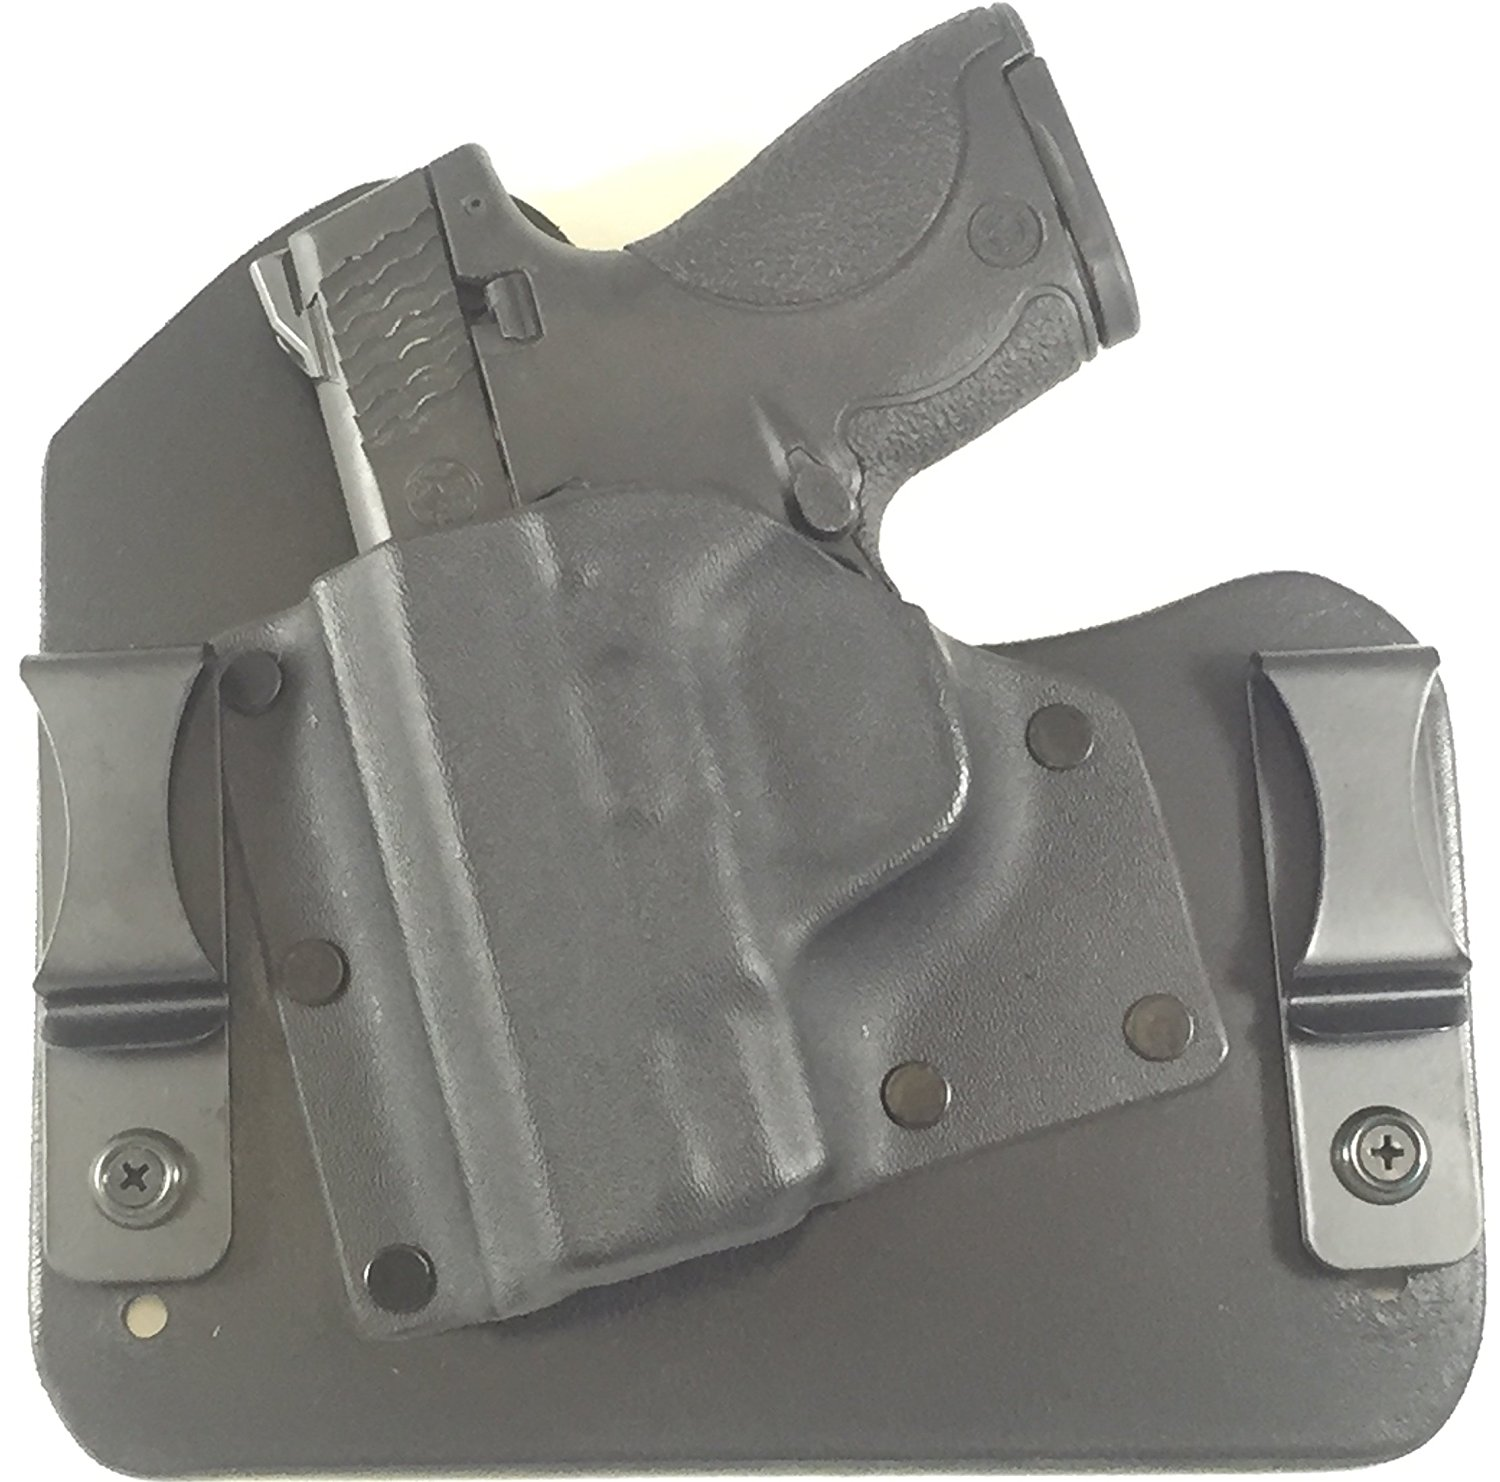 Everyday Holsters Smith & Wesson M&P Shield Hybrid Holster IWB Left Hand